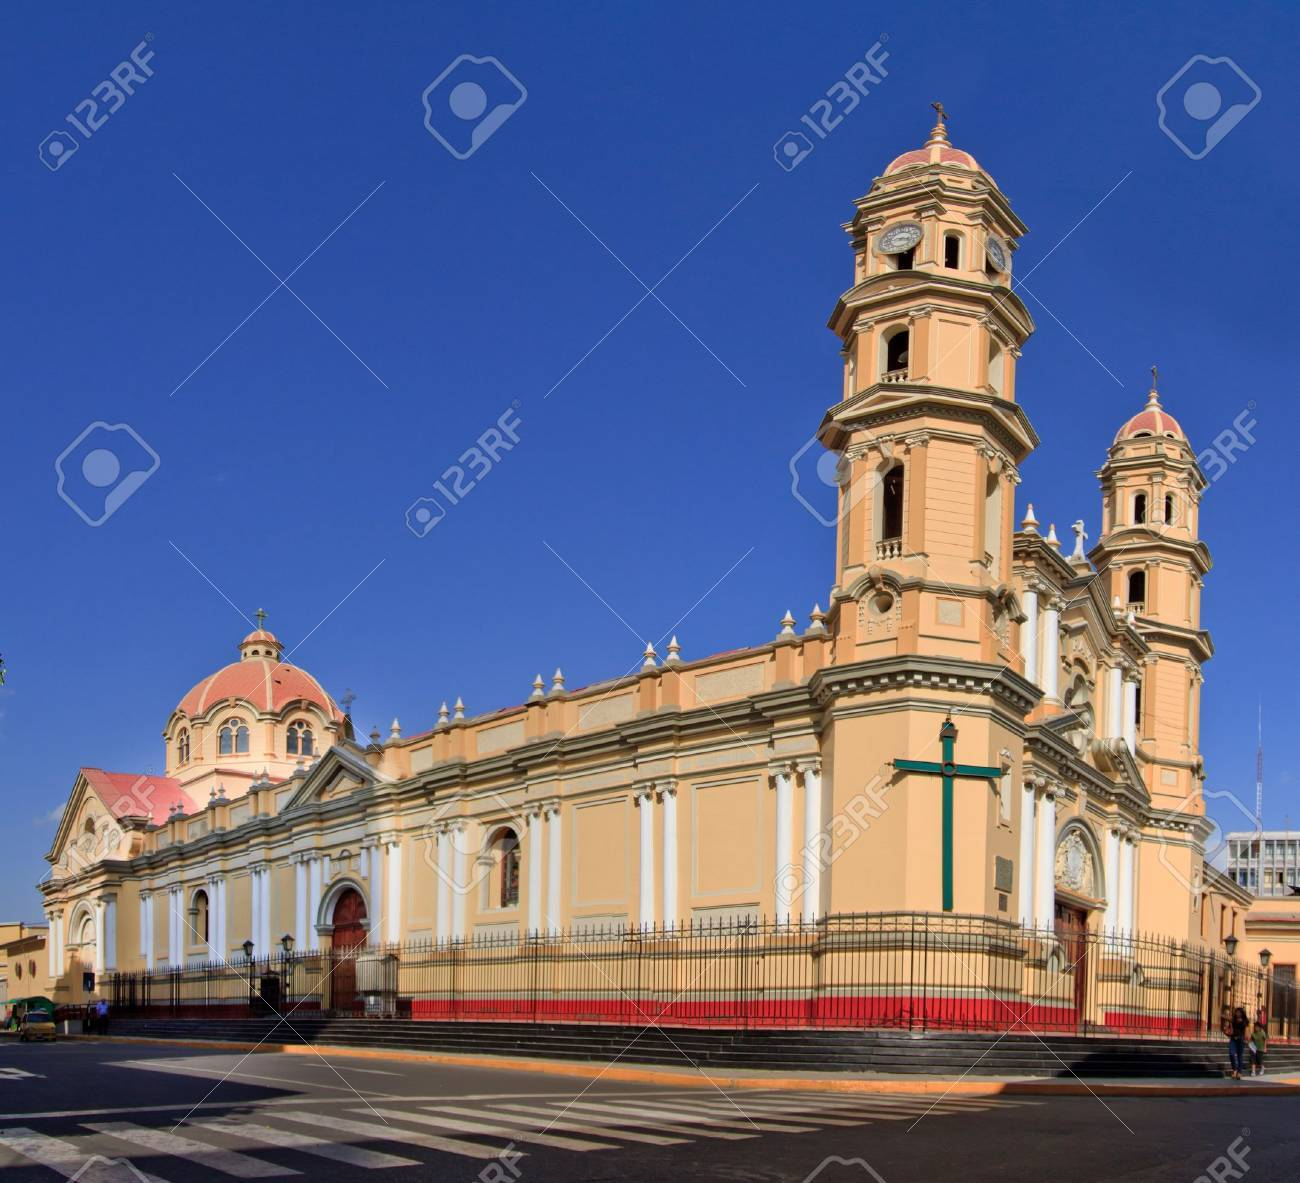 Main Cathedral In The City Of Piura In Peru Stock Photo Picture And Royalty Free Image Image 17566023